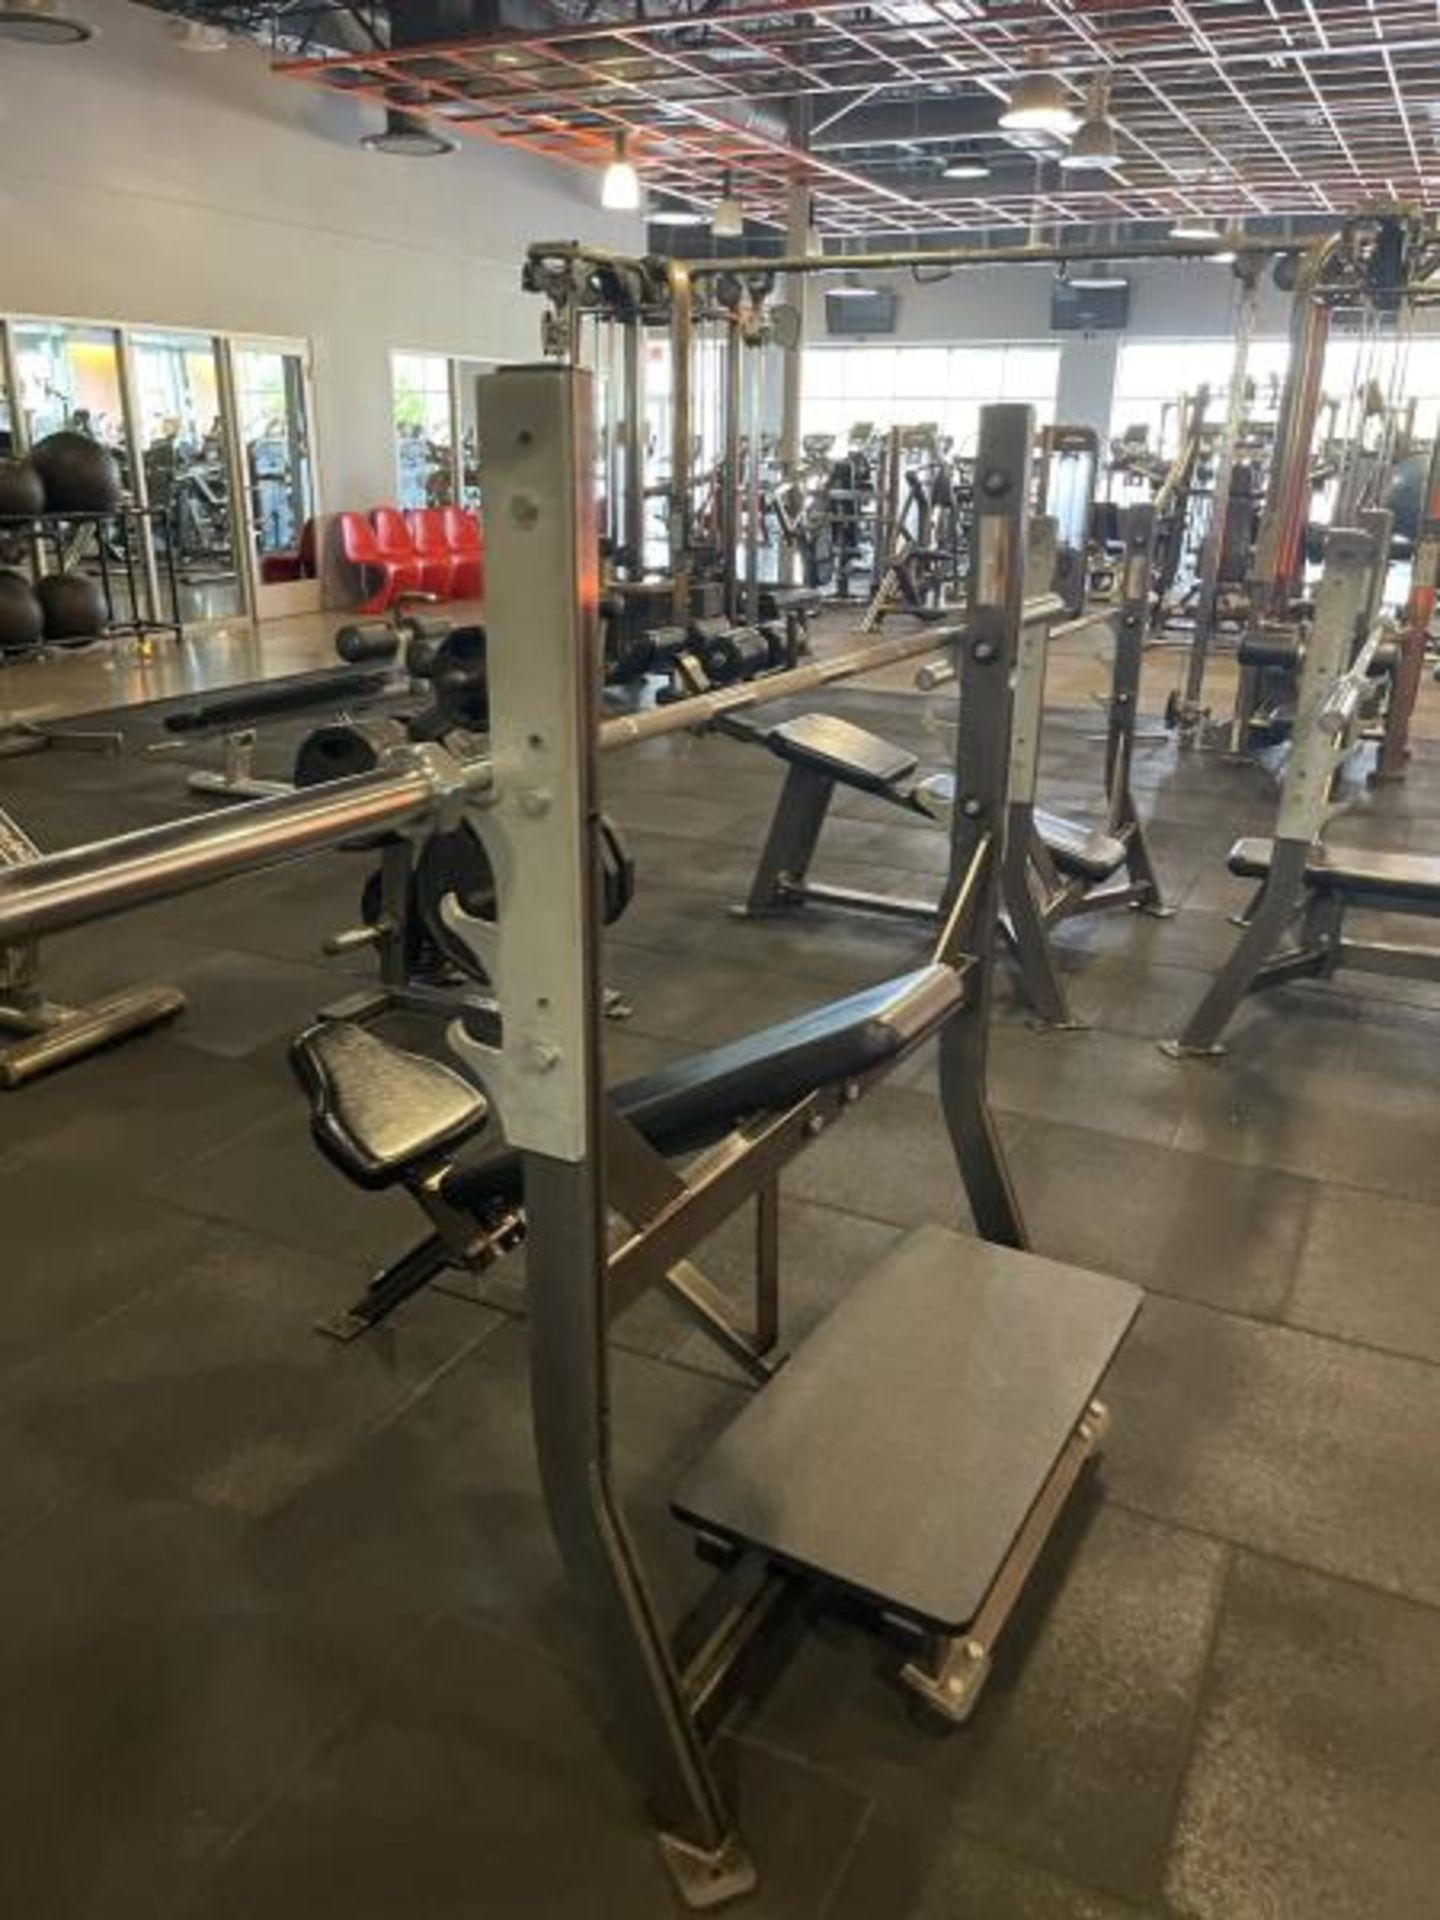 Hammer Strength with Bench, Rack, Bars - Image 4 of 5